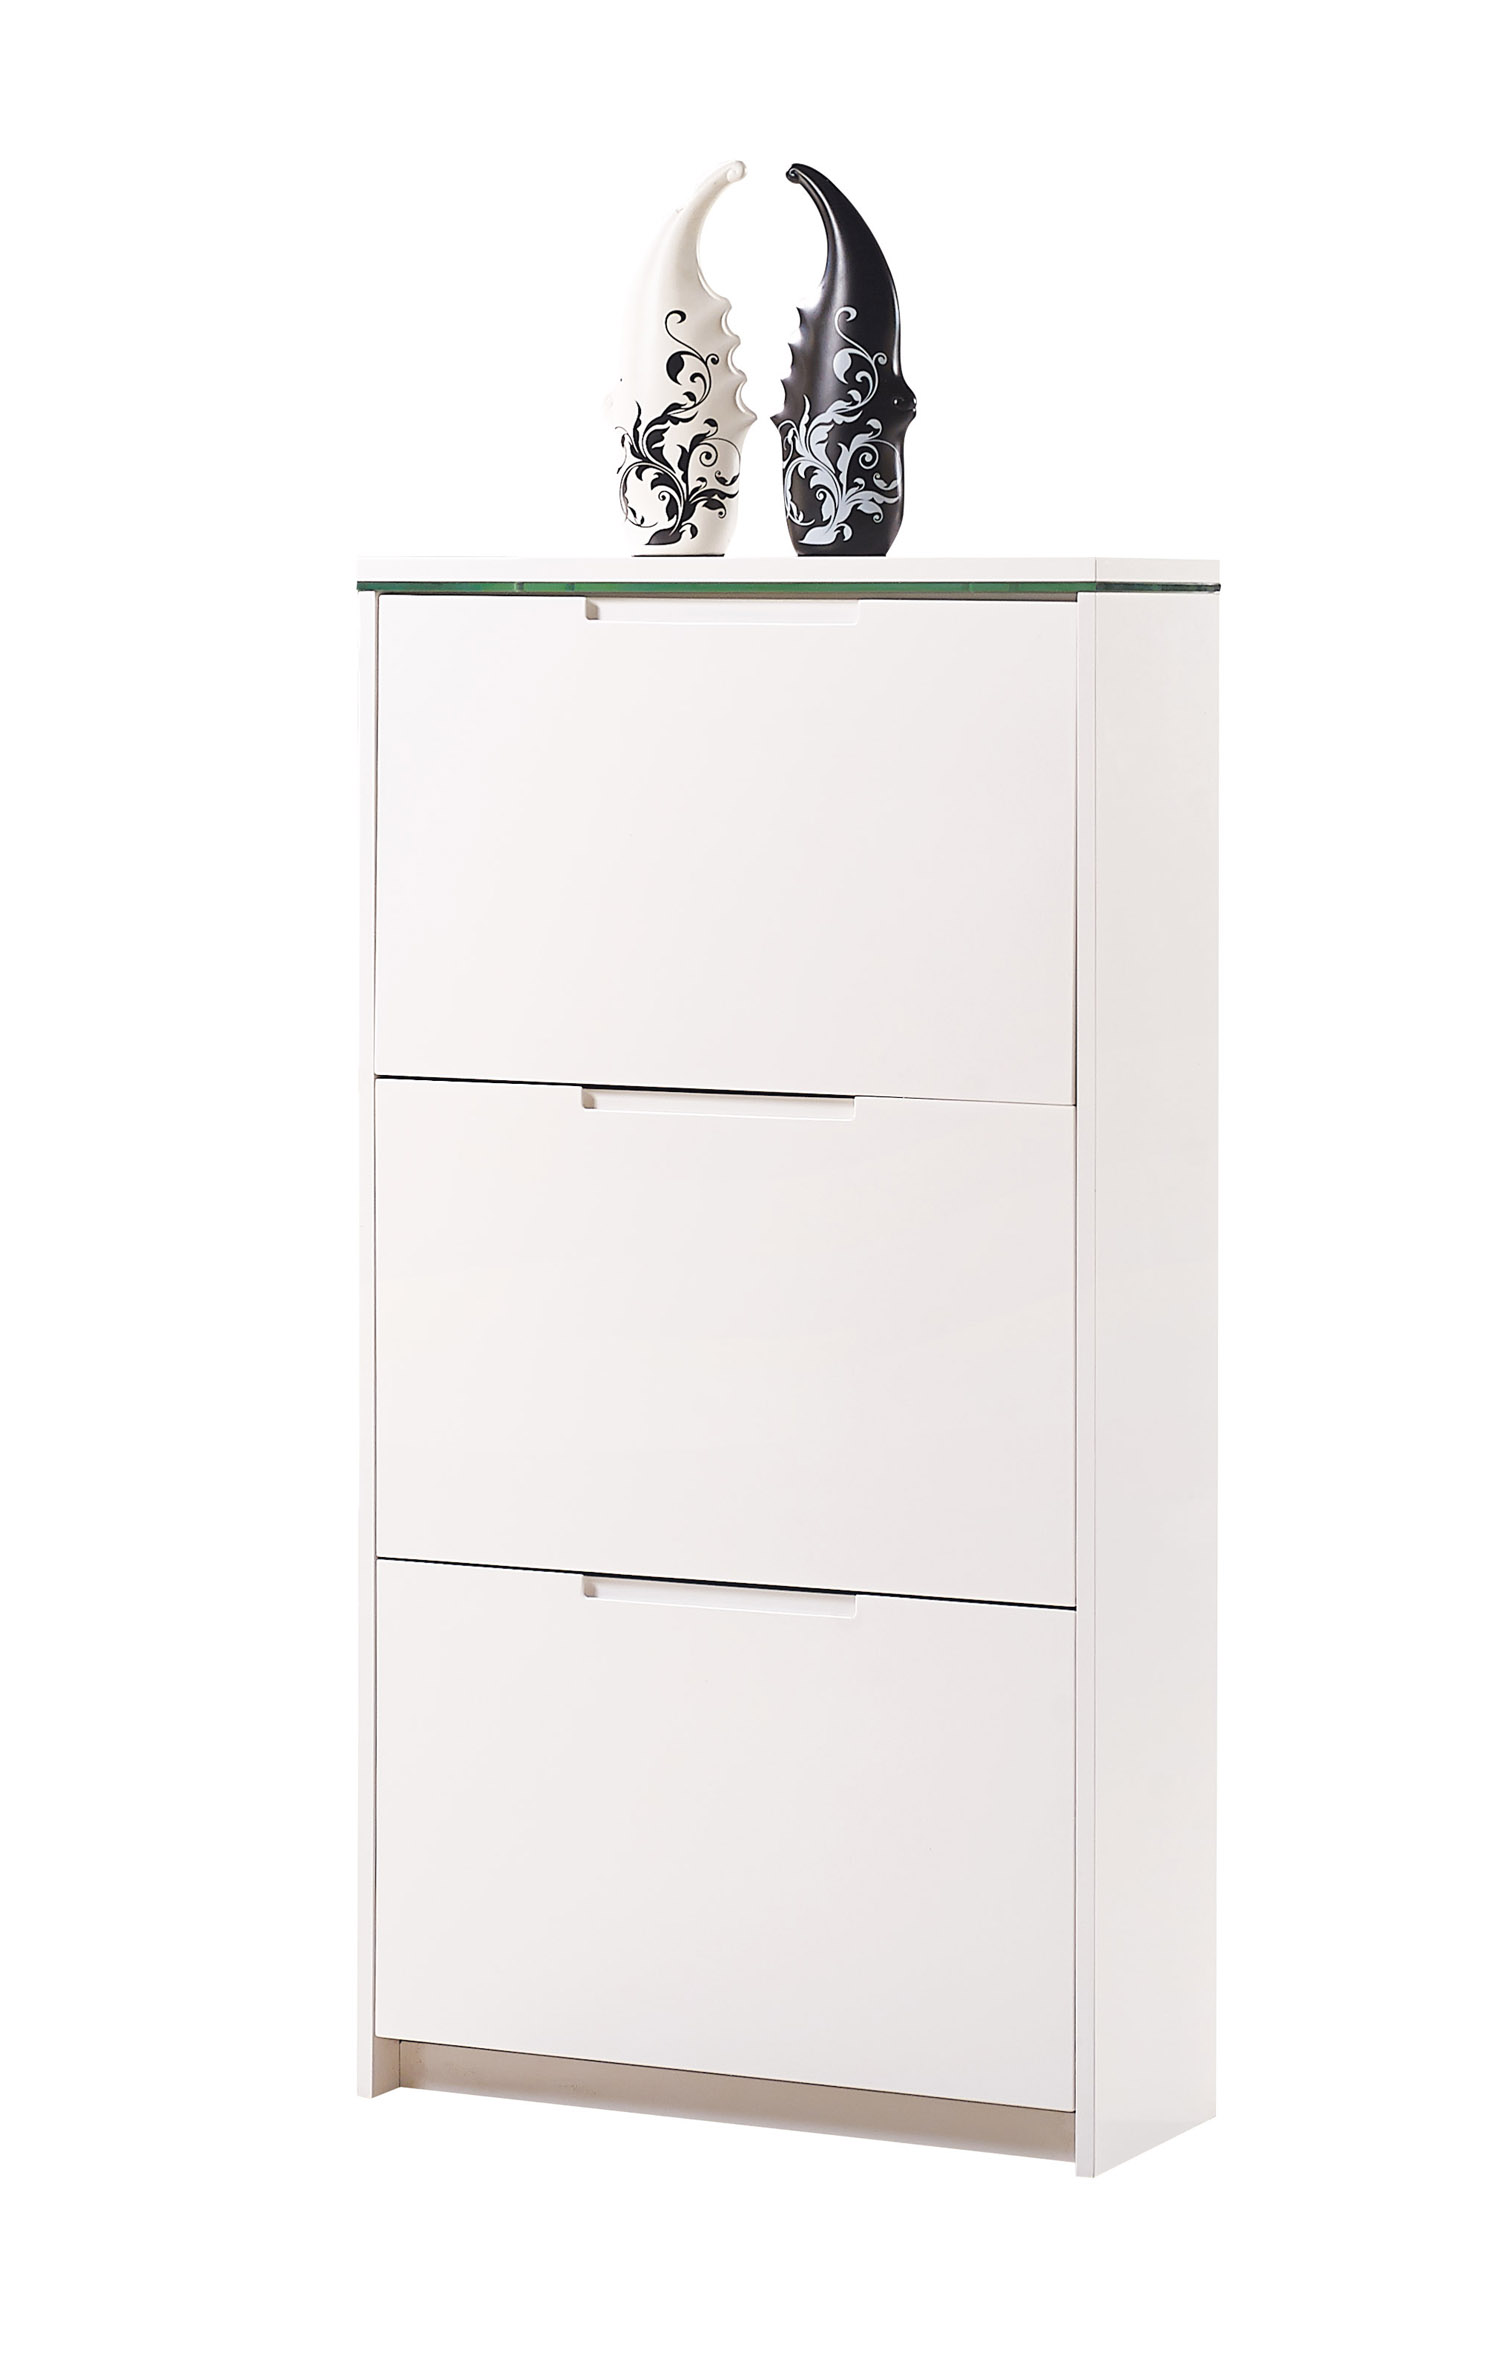 schuhschrank schuhe schuhkipper 3 4 kipper mdf weiss hochglanz led beleuchtung ebay. Black Bedroom Furniture Sets. Home Design Ideas